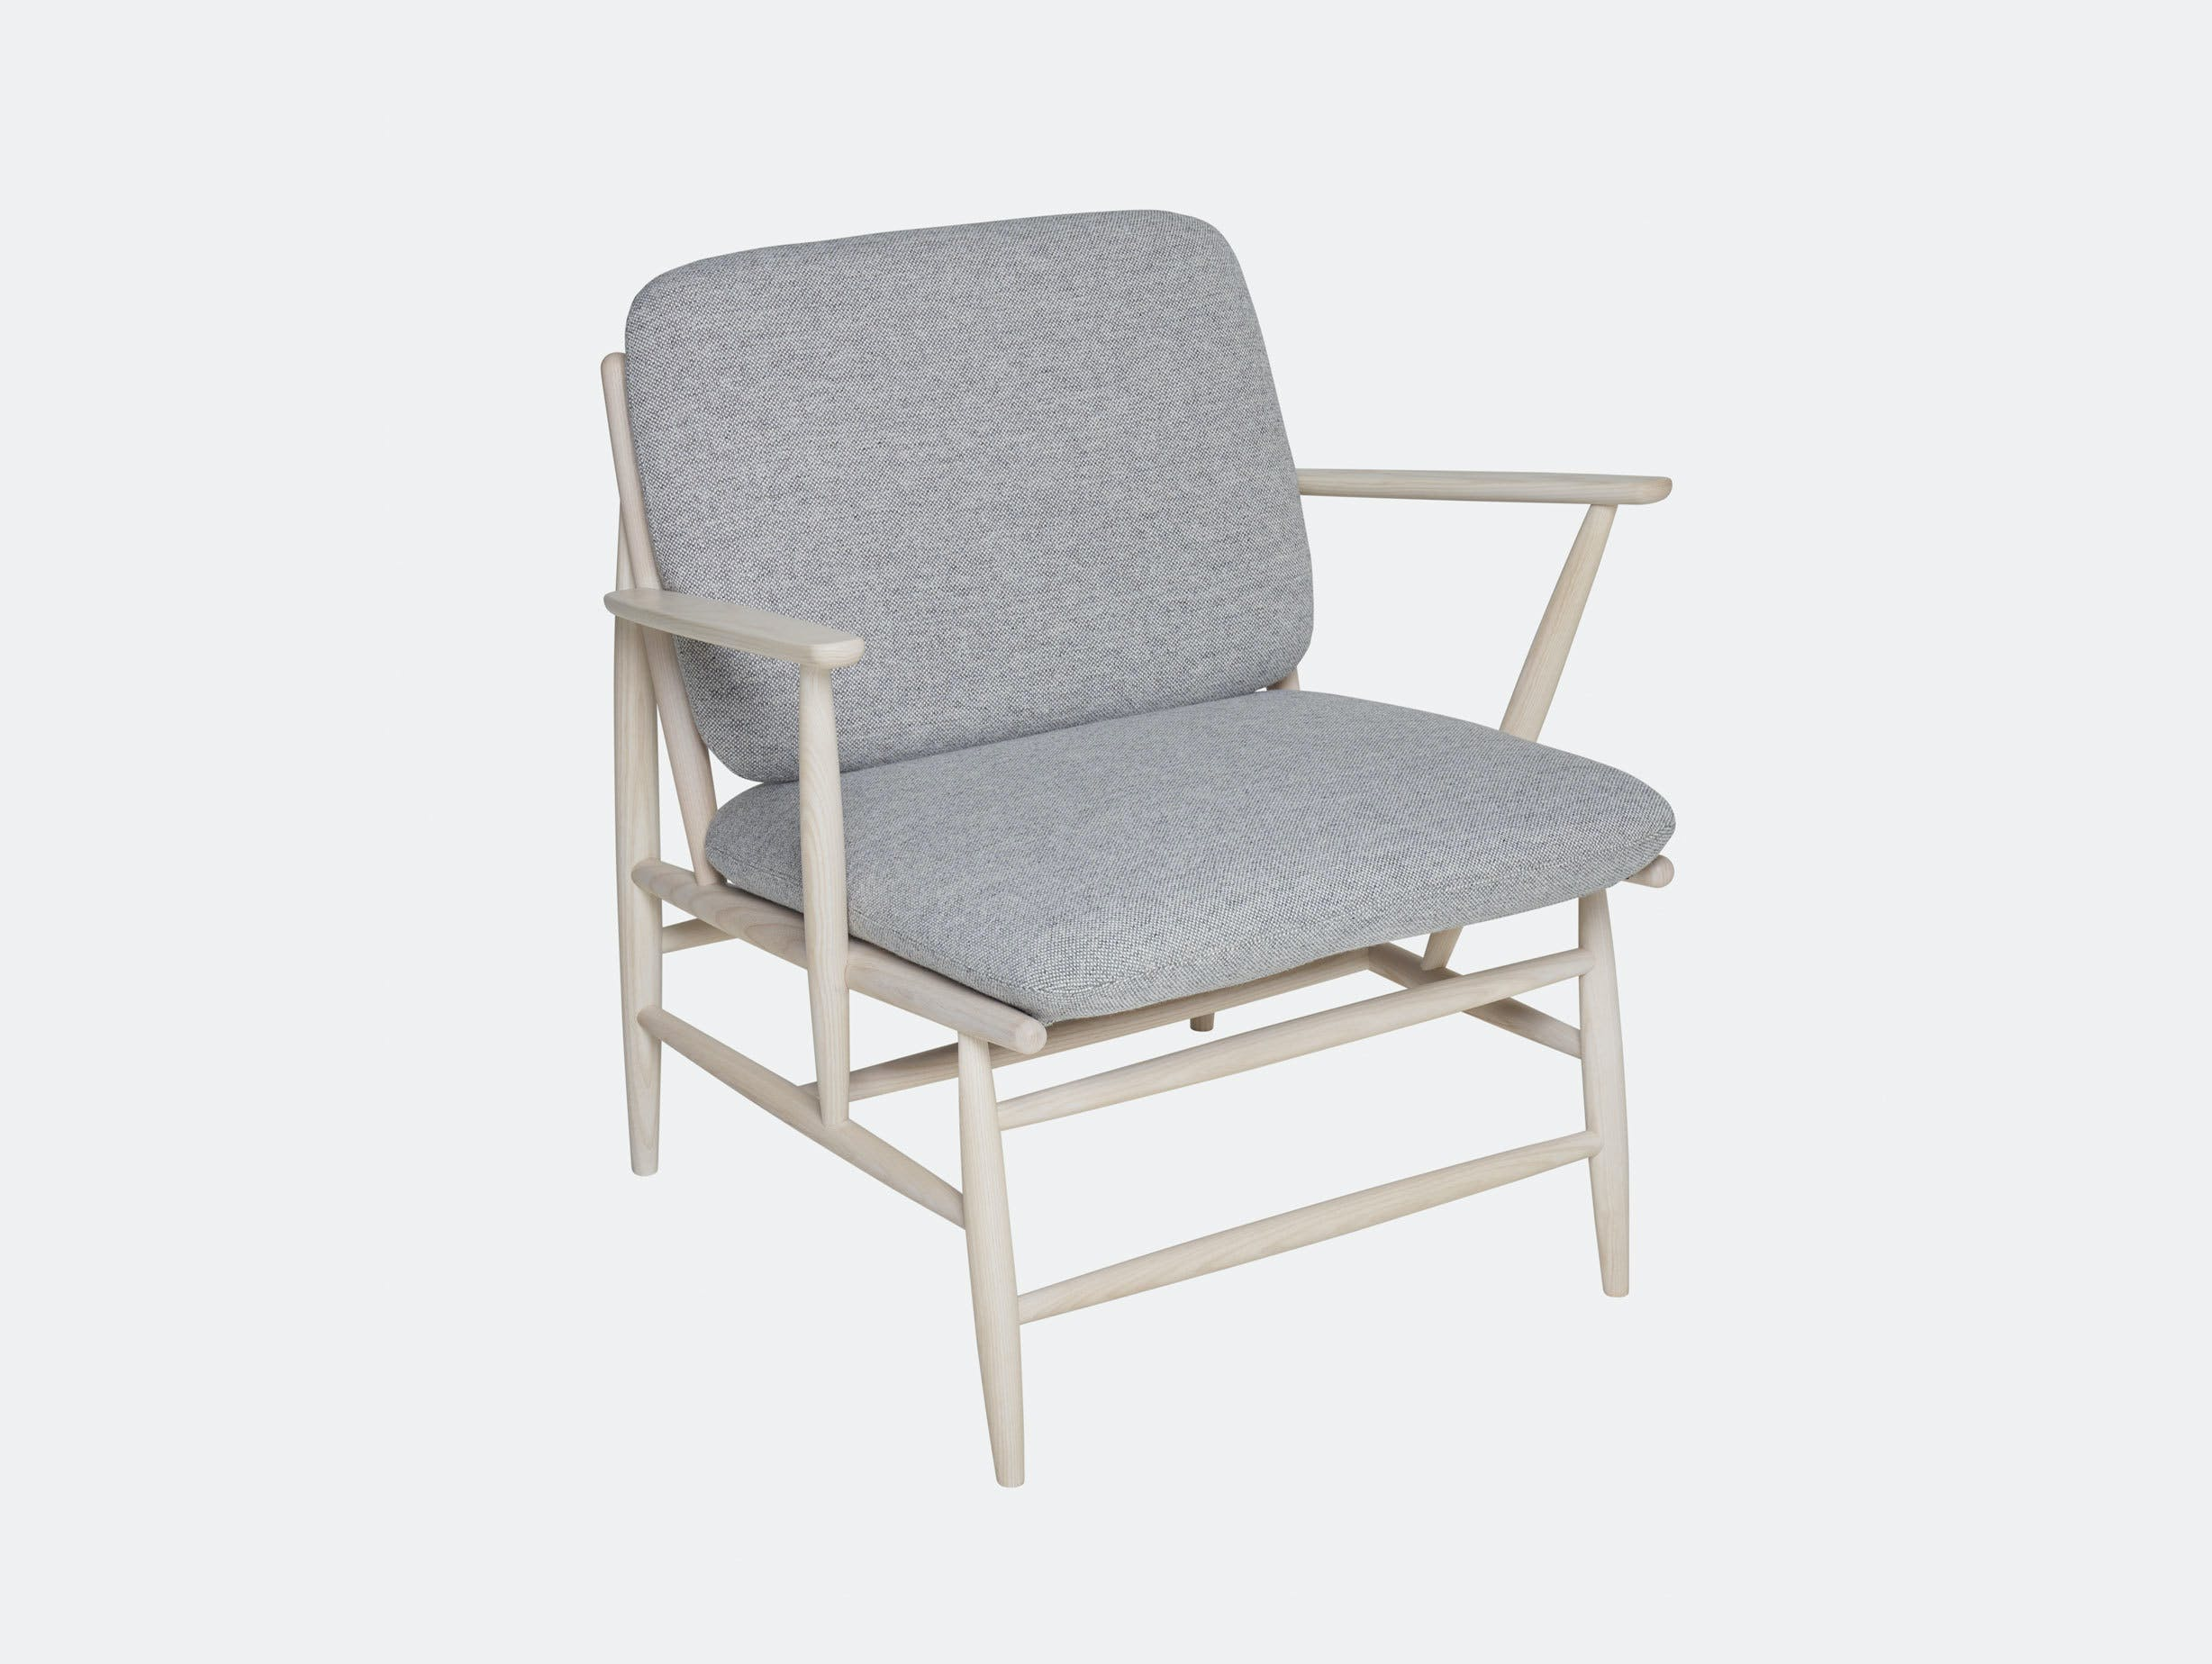 Ercol Von Lounge Chair Grey Hallingdal Ash With Arms Hlynur V  Atlason